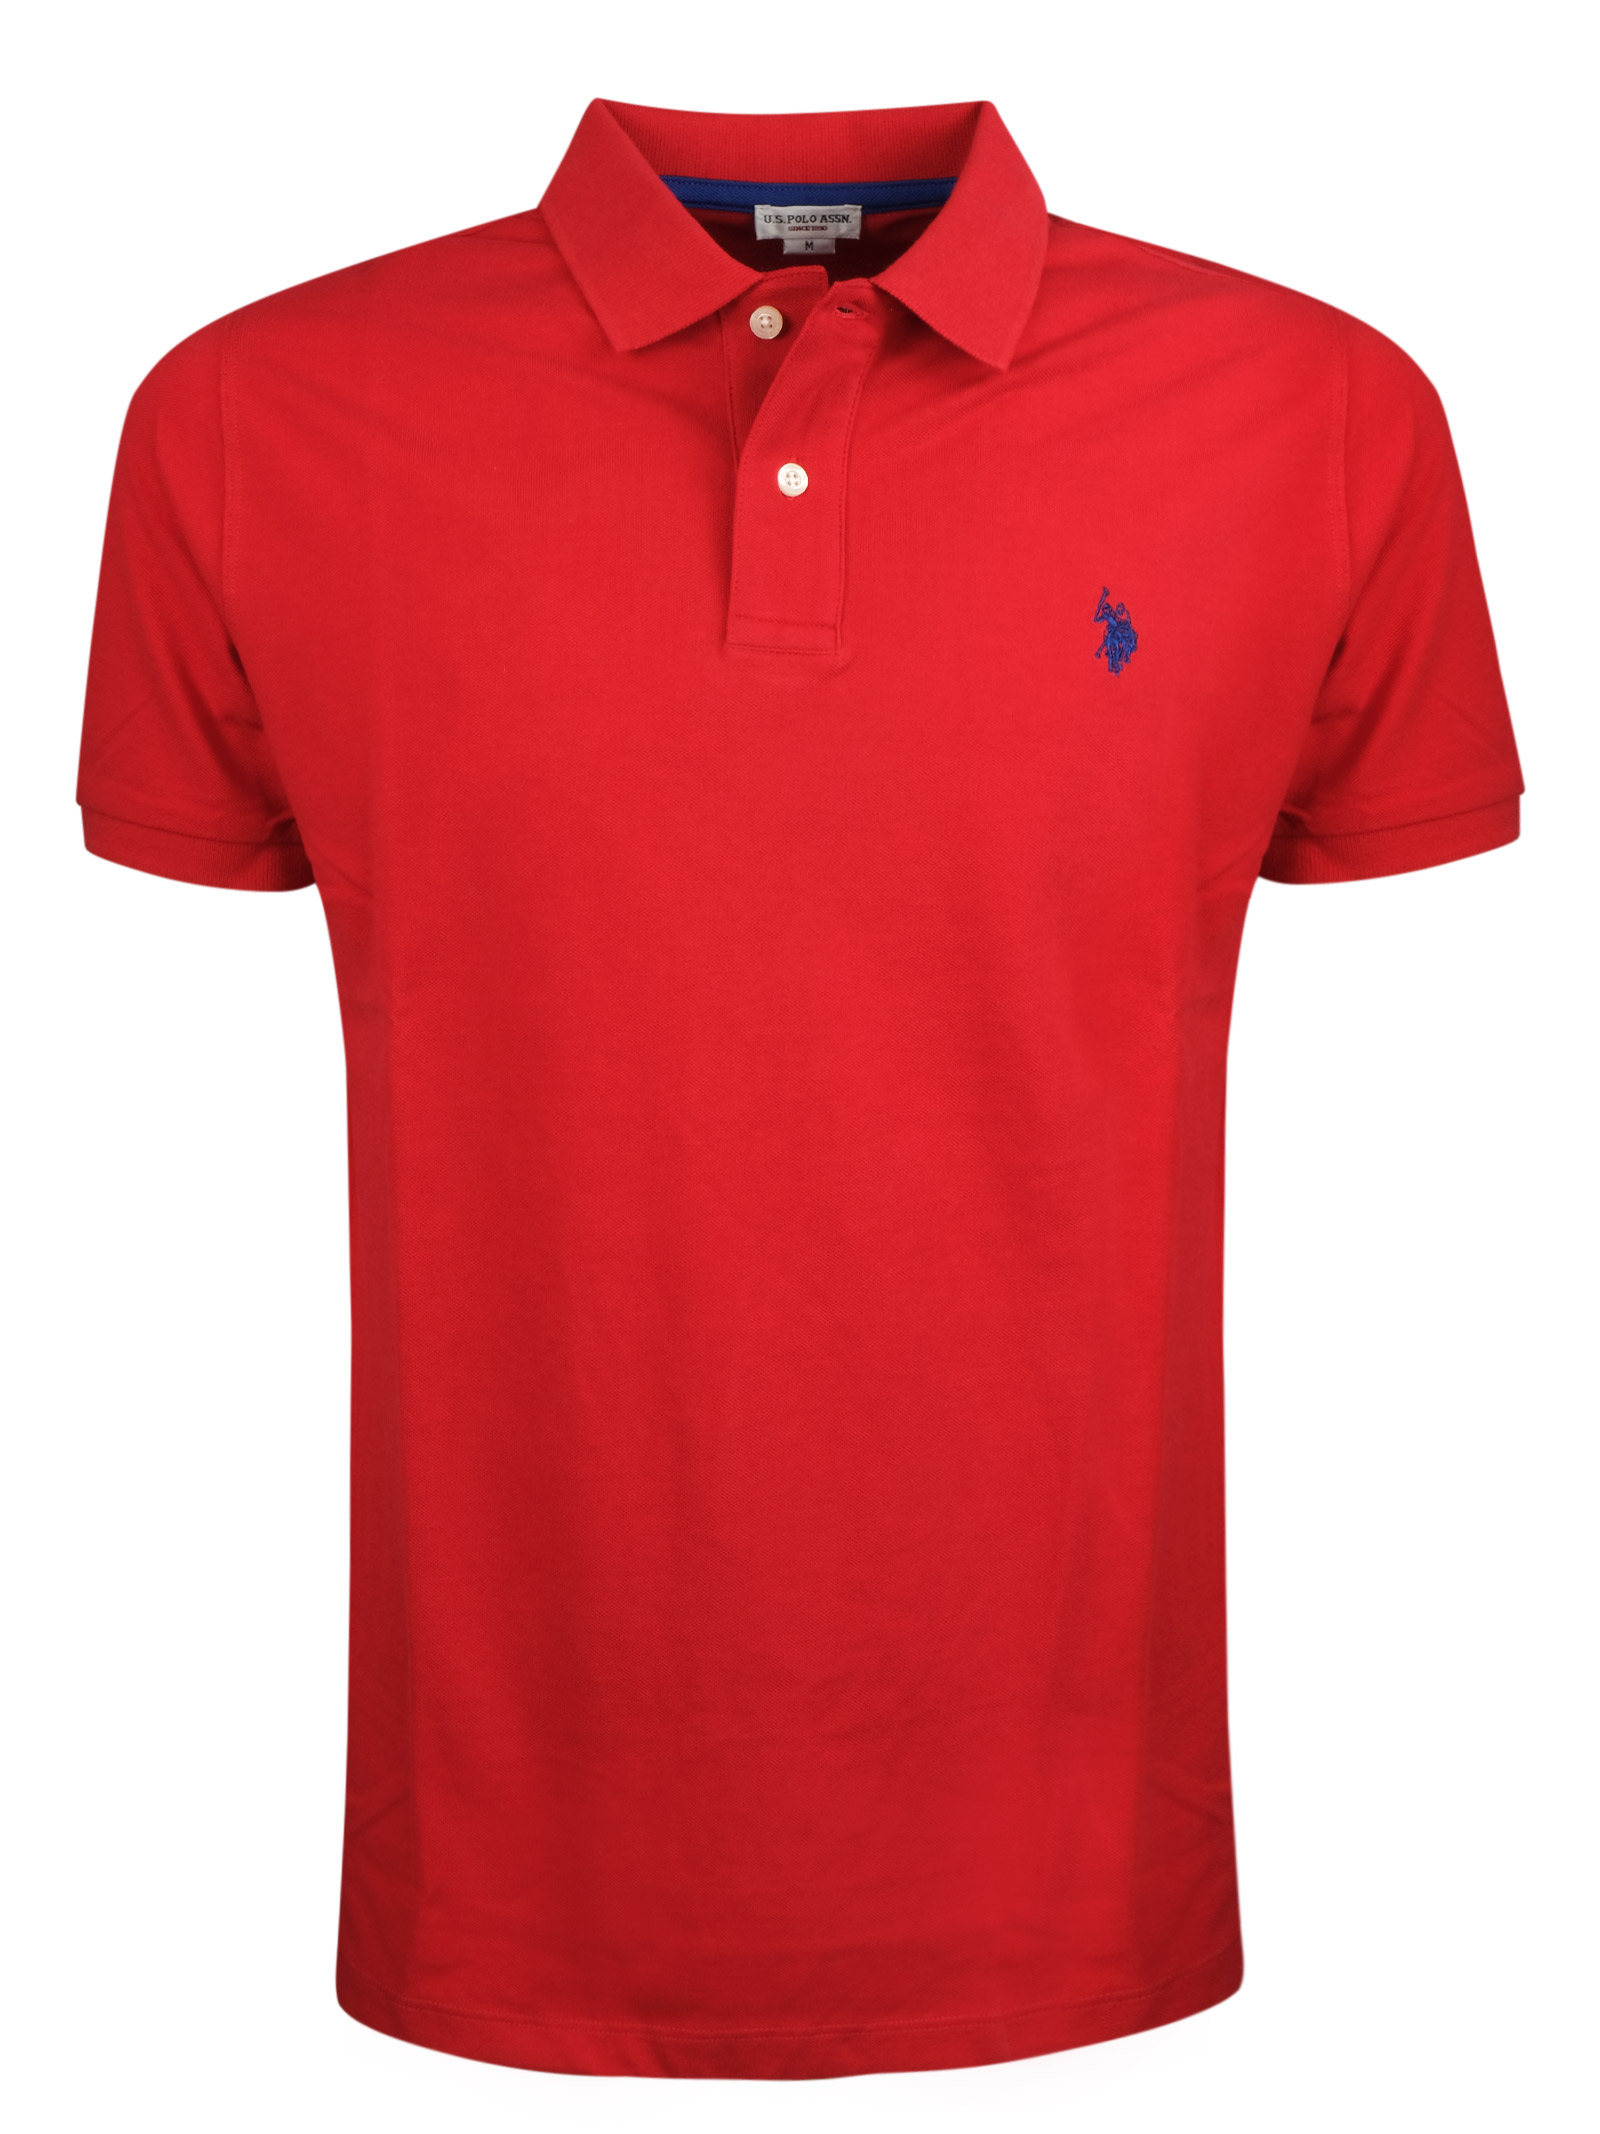 Short sleeves two buttons polo, US POLO ASSN. | Polos | 197 60129 41029155